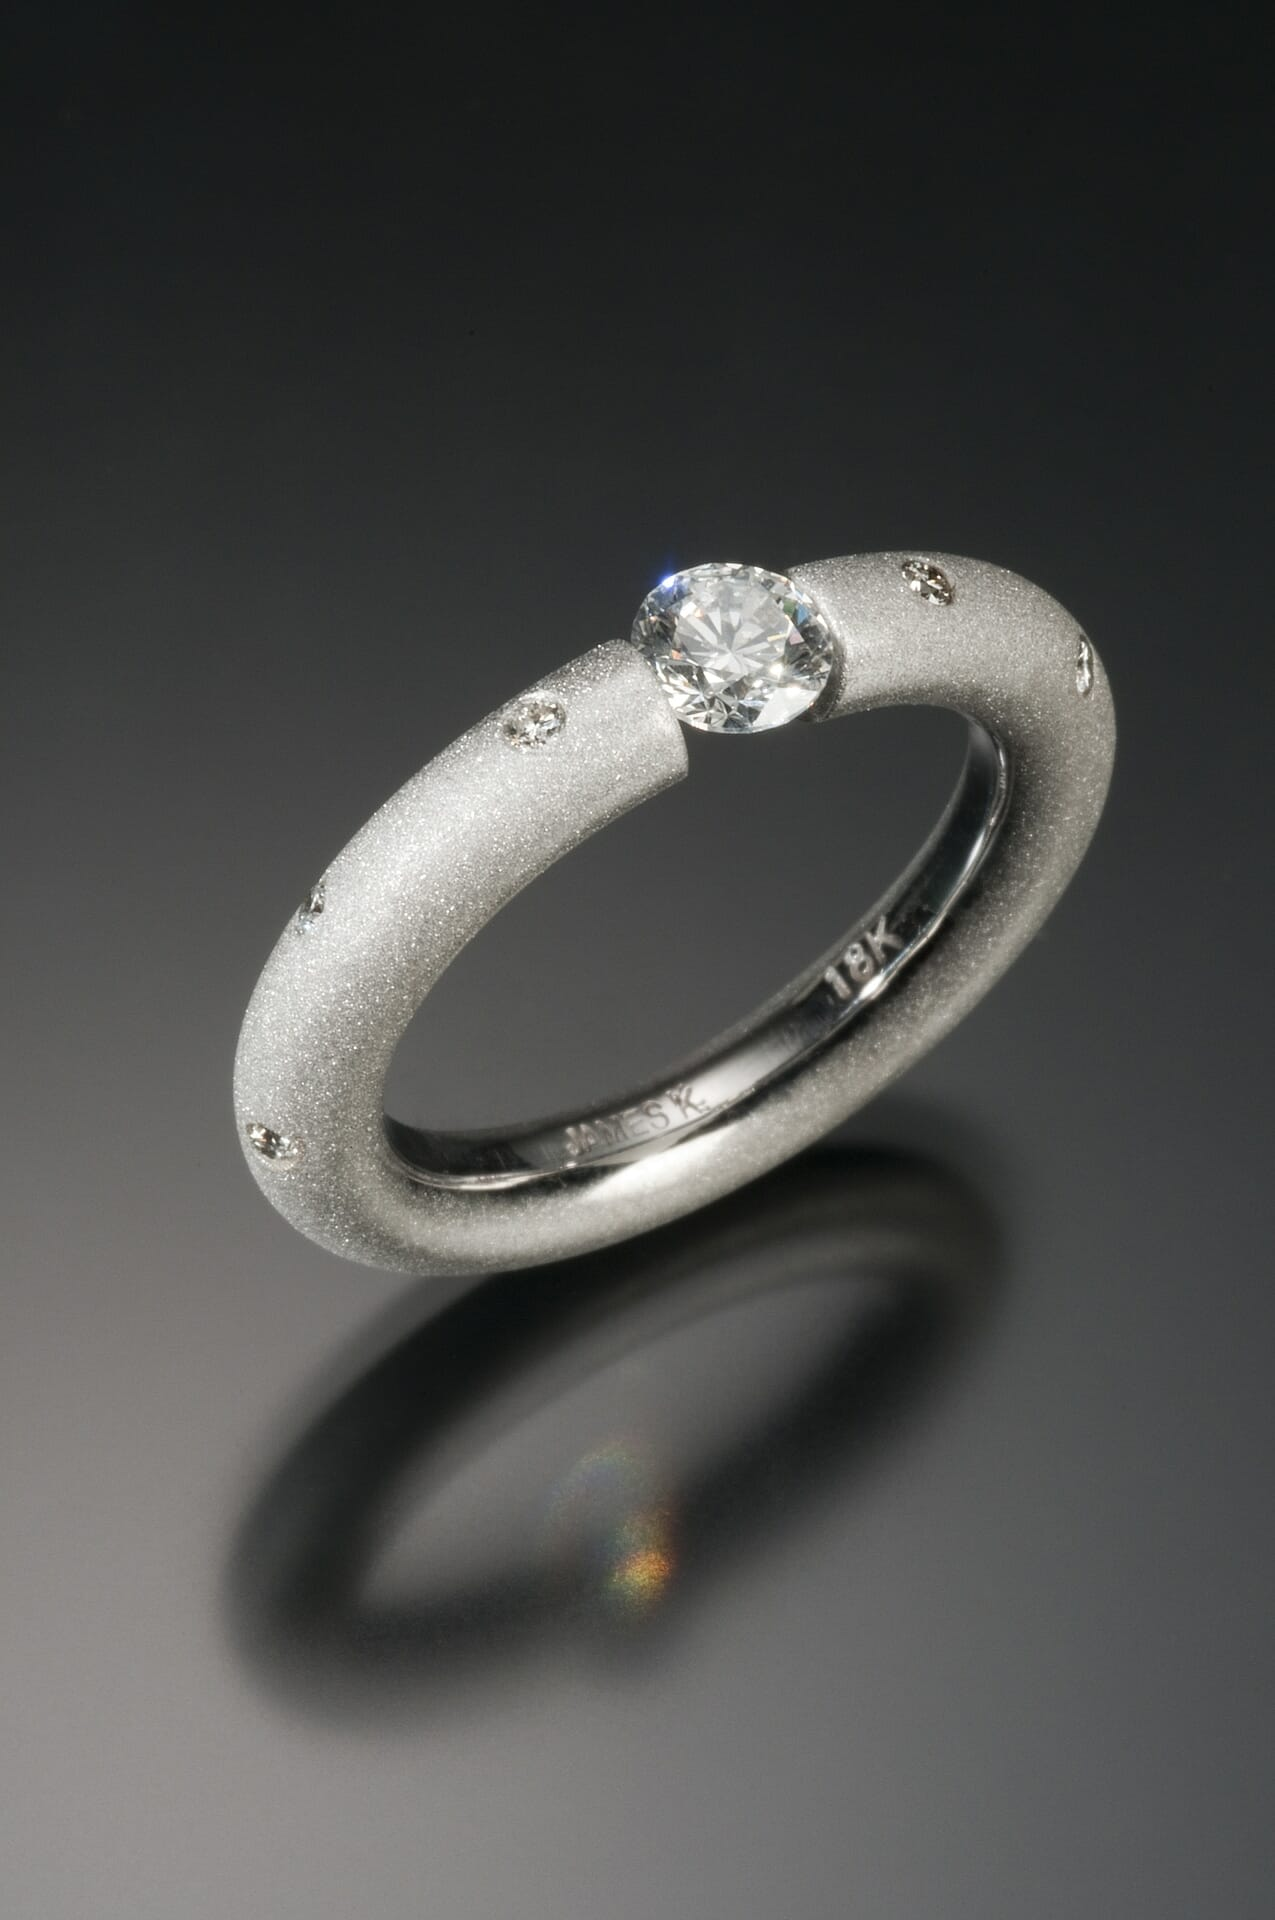 engagement and rings jewellery white wedding diamond platinum pear cut contemporary mccaul modern fine ring goldsmiths